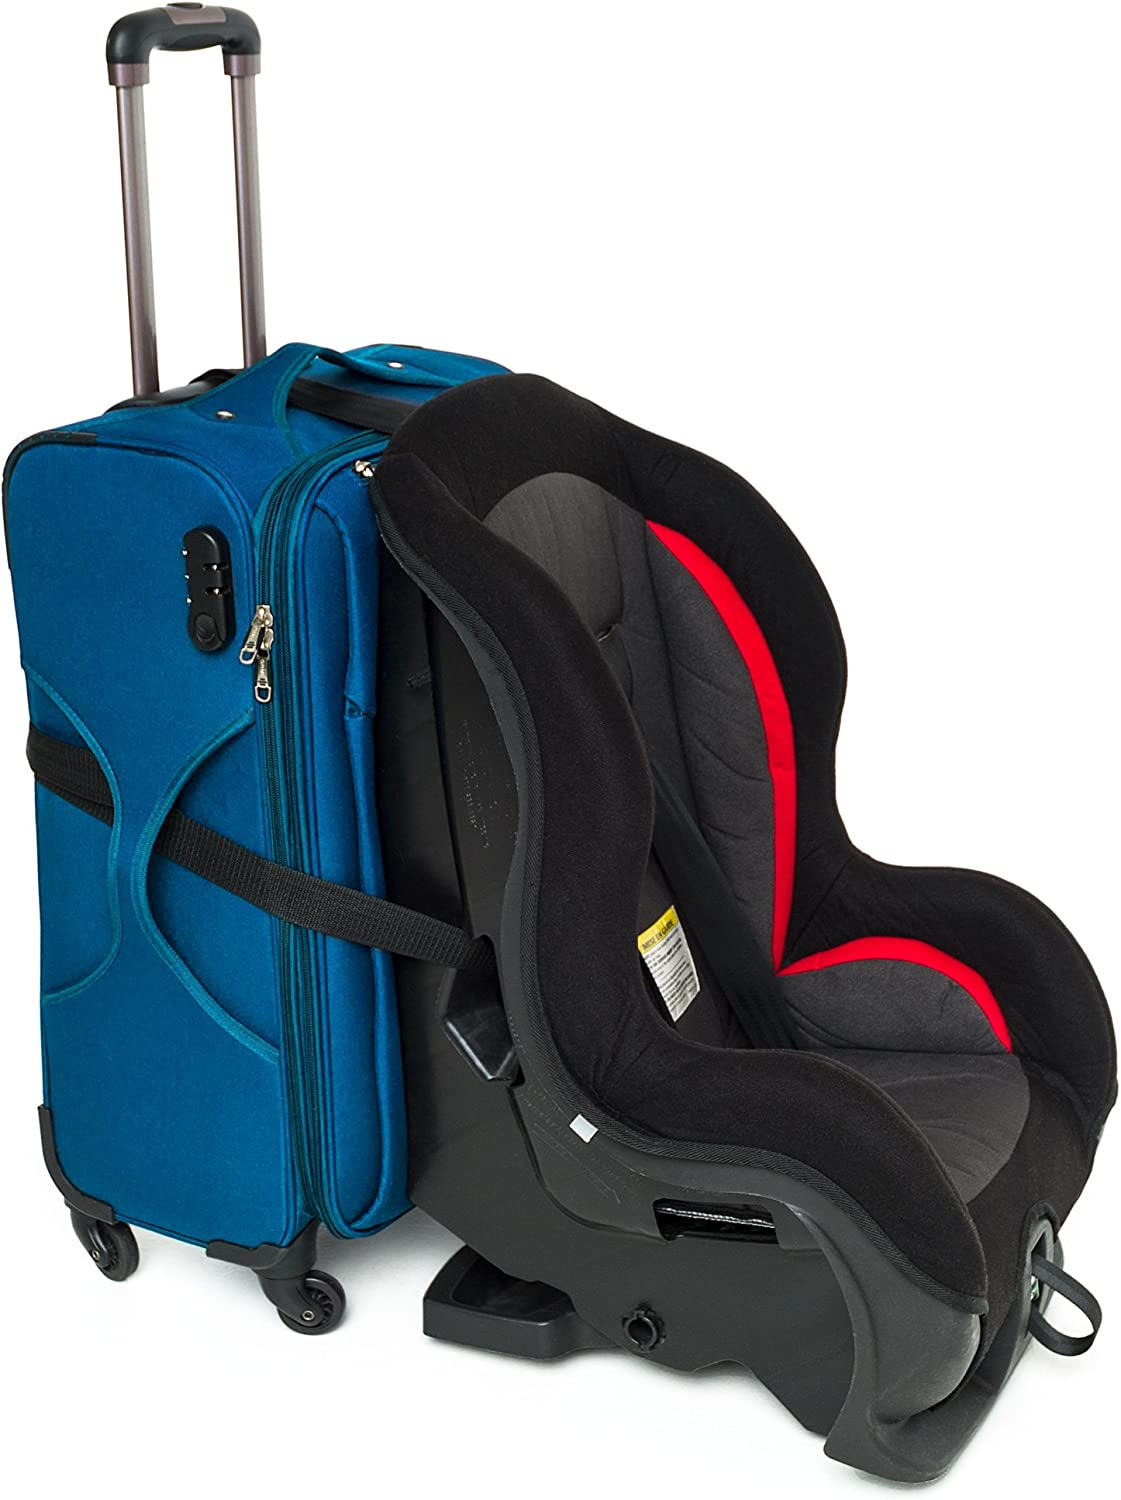 Lightweight Baby Car Seat Storage Bag Stroller Carrier Best for Airplanes Trains. MQUPIN Car Seat Bag Travel Luaage Bag with Backpack Shoulder Straps